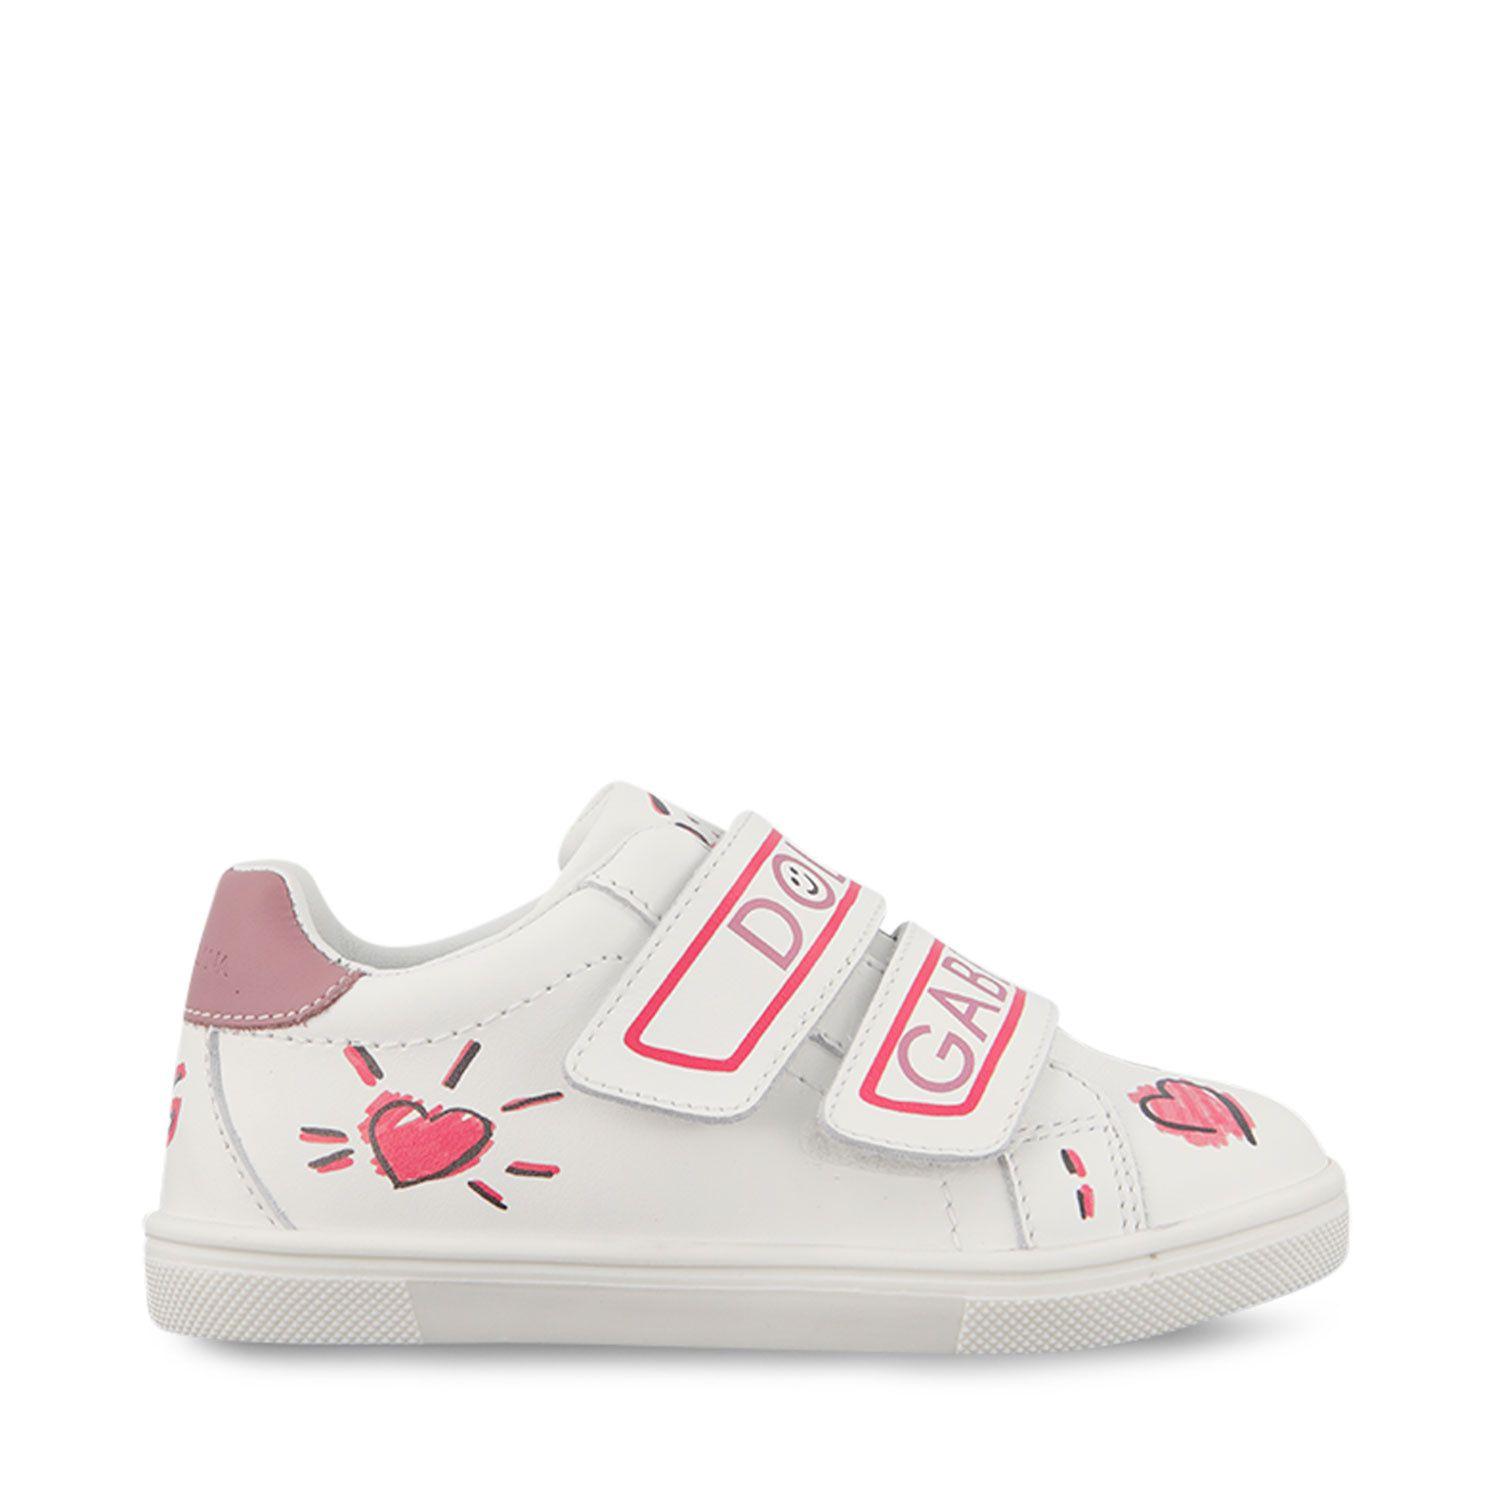 Picture of Dolce & Gabbana DN0157 A6C93 kids sneakers white